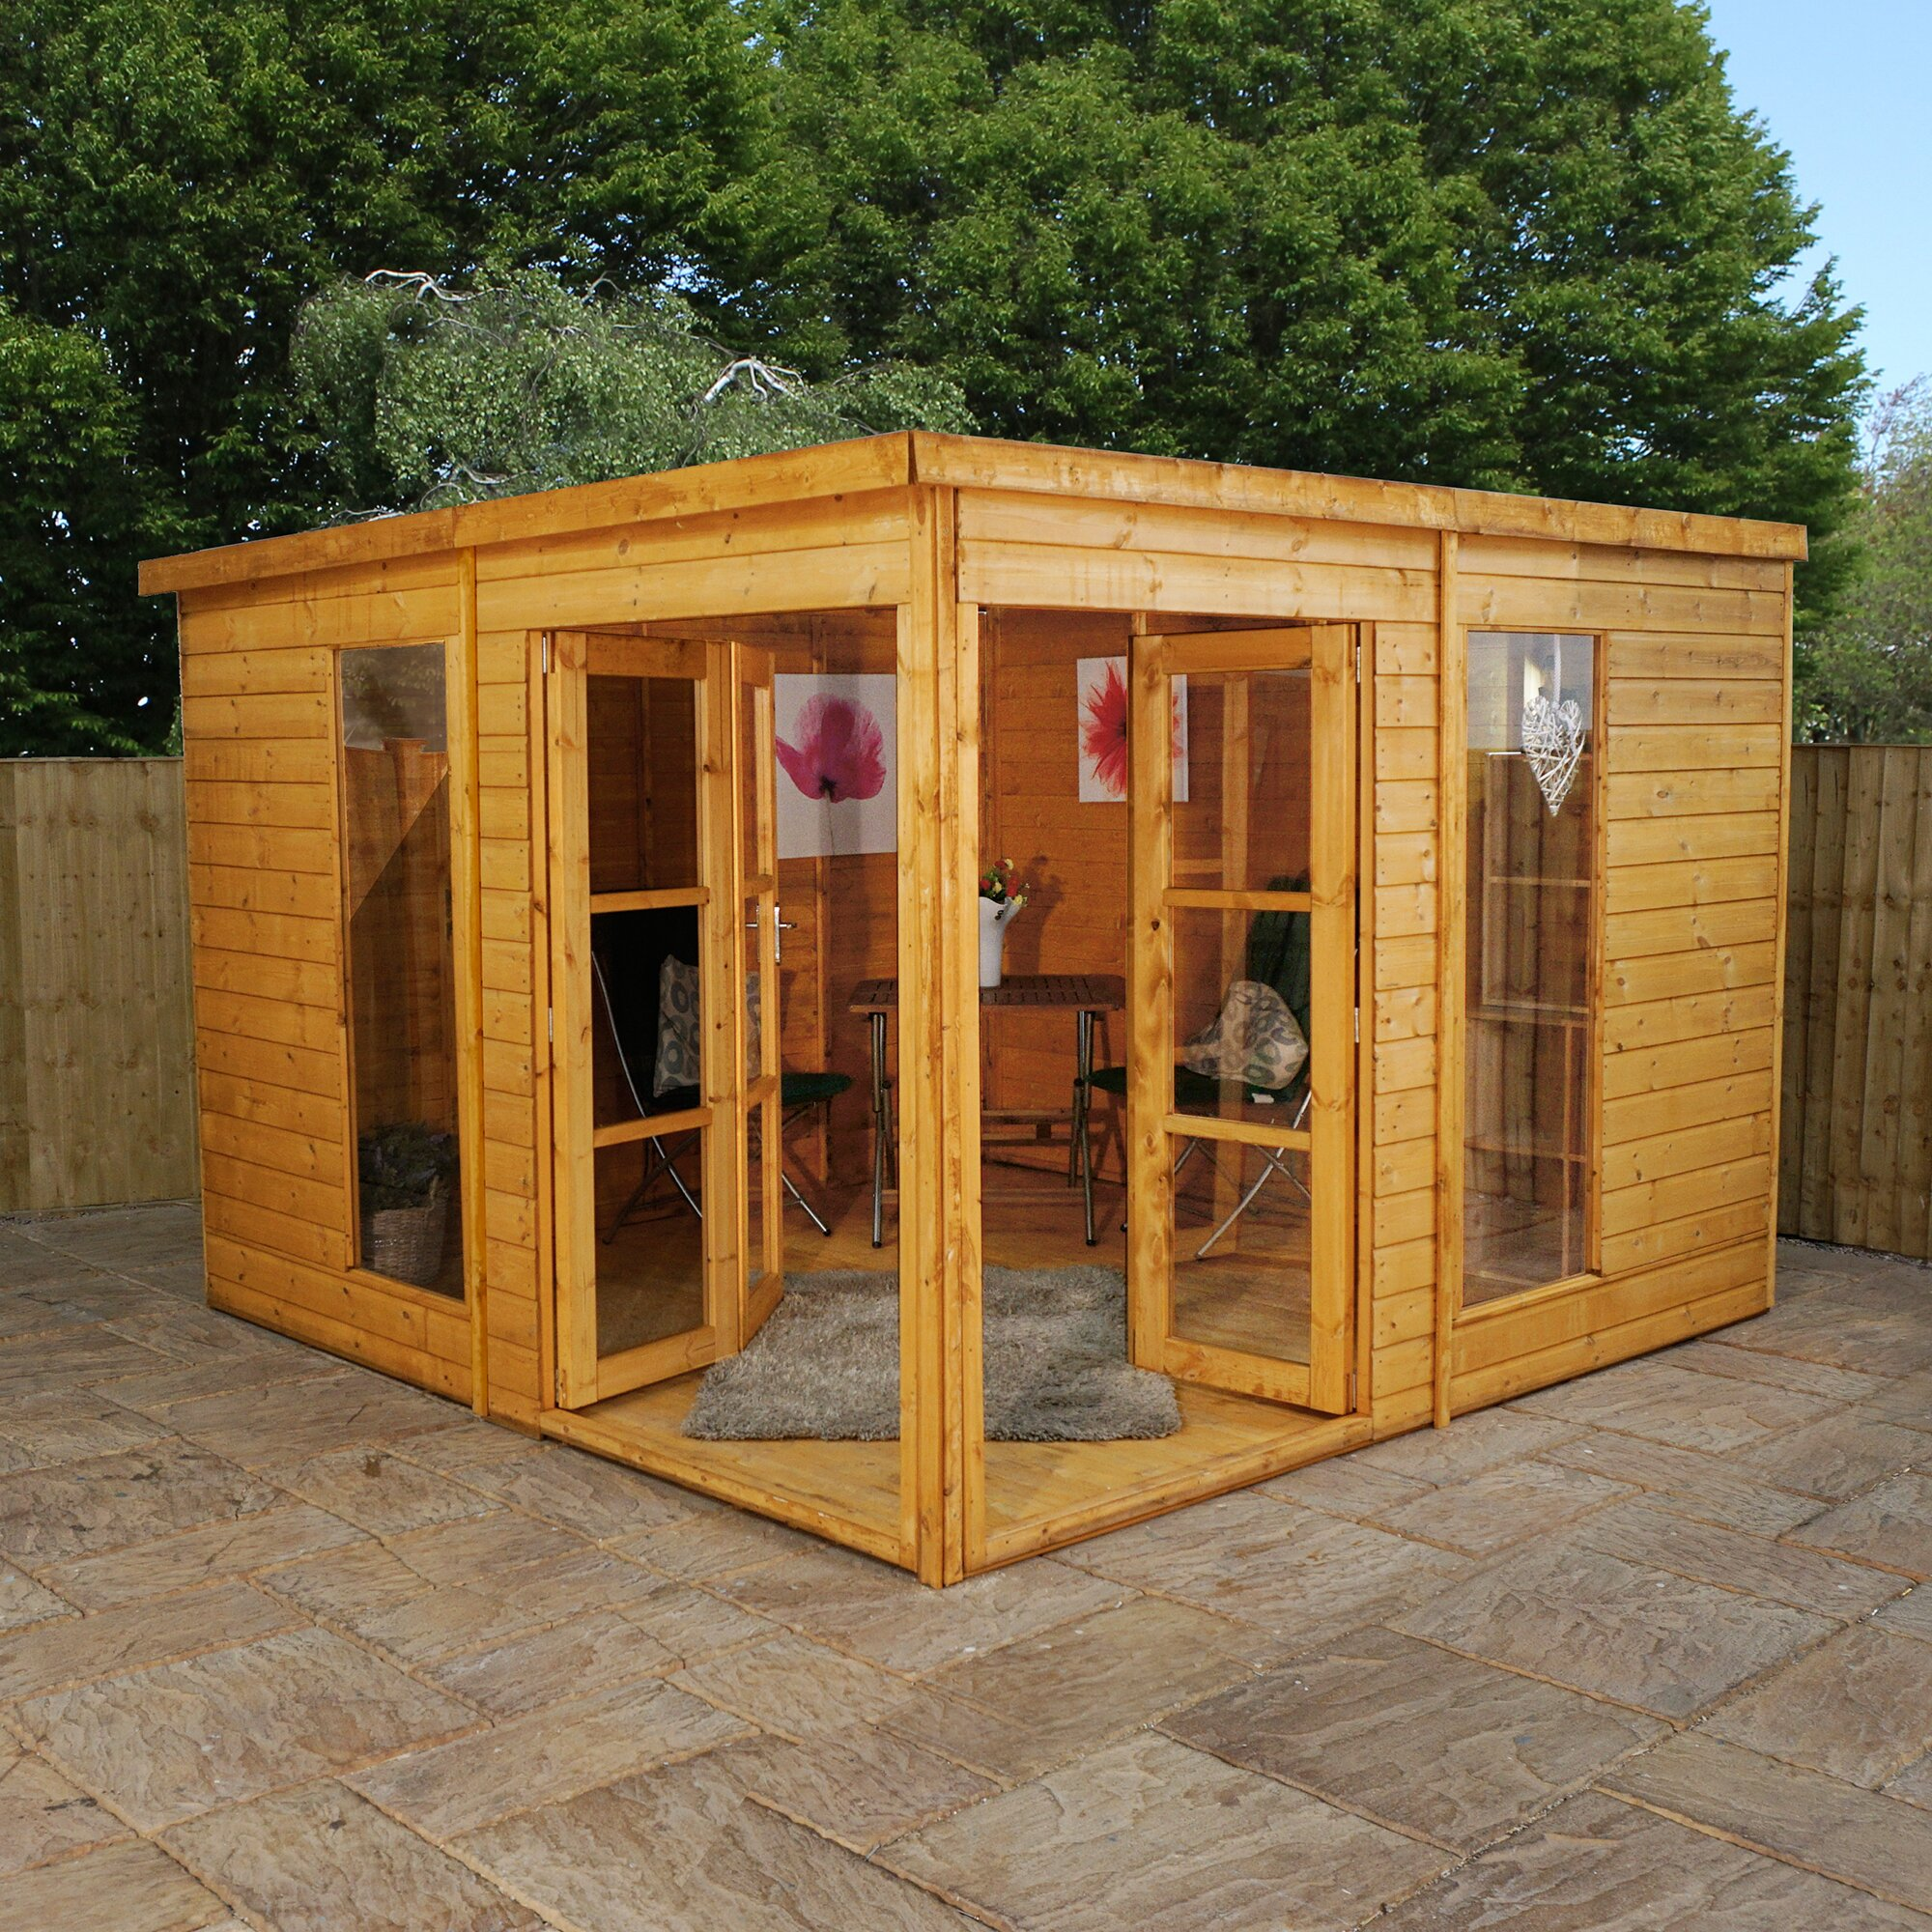 Mercia garden products 10 x 10 garden room summerhouse for Garden shed 10x10